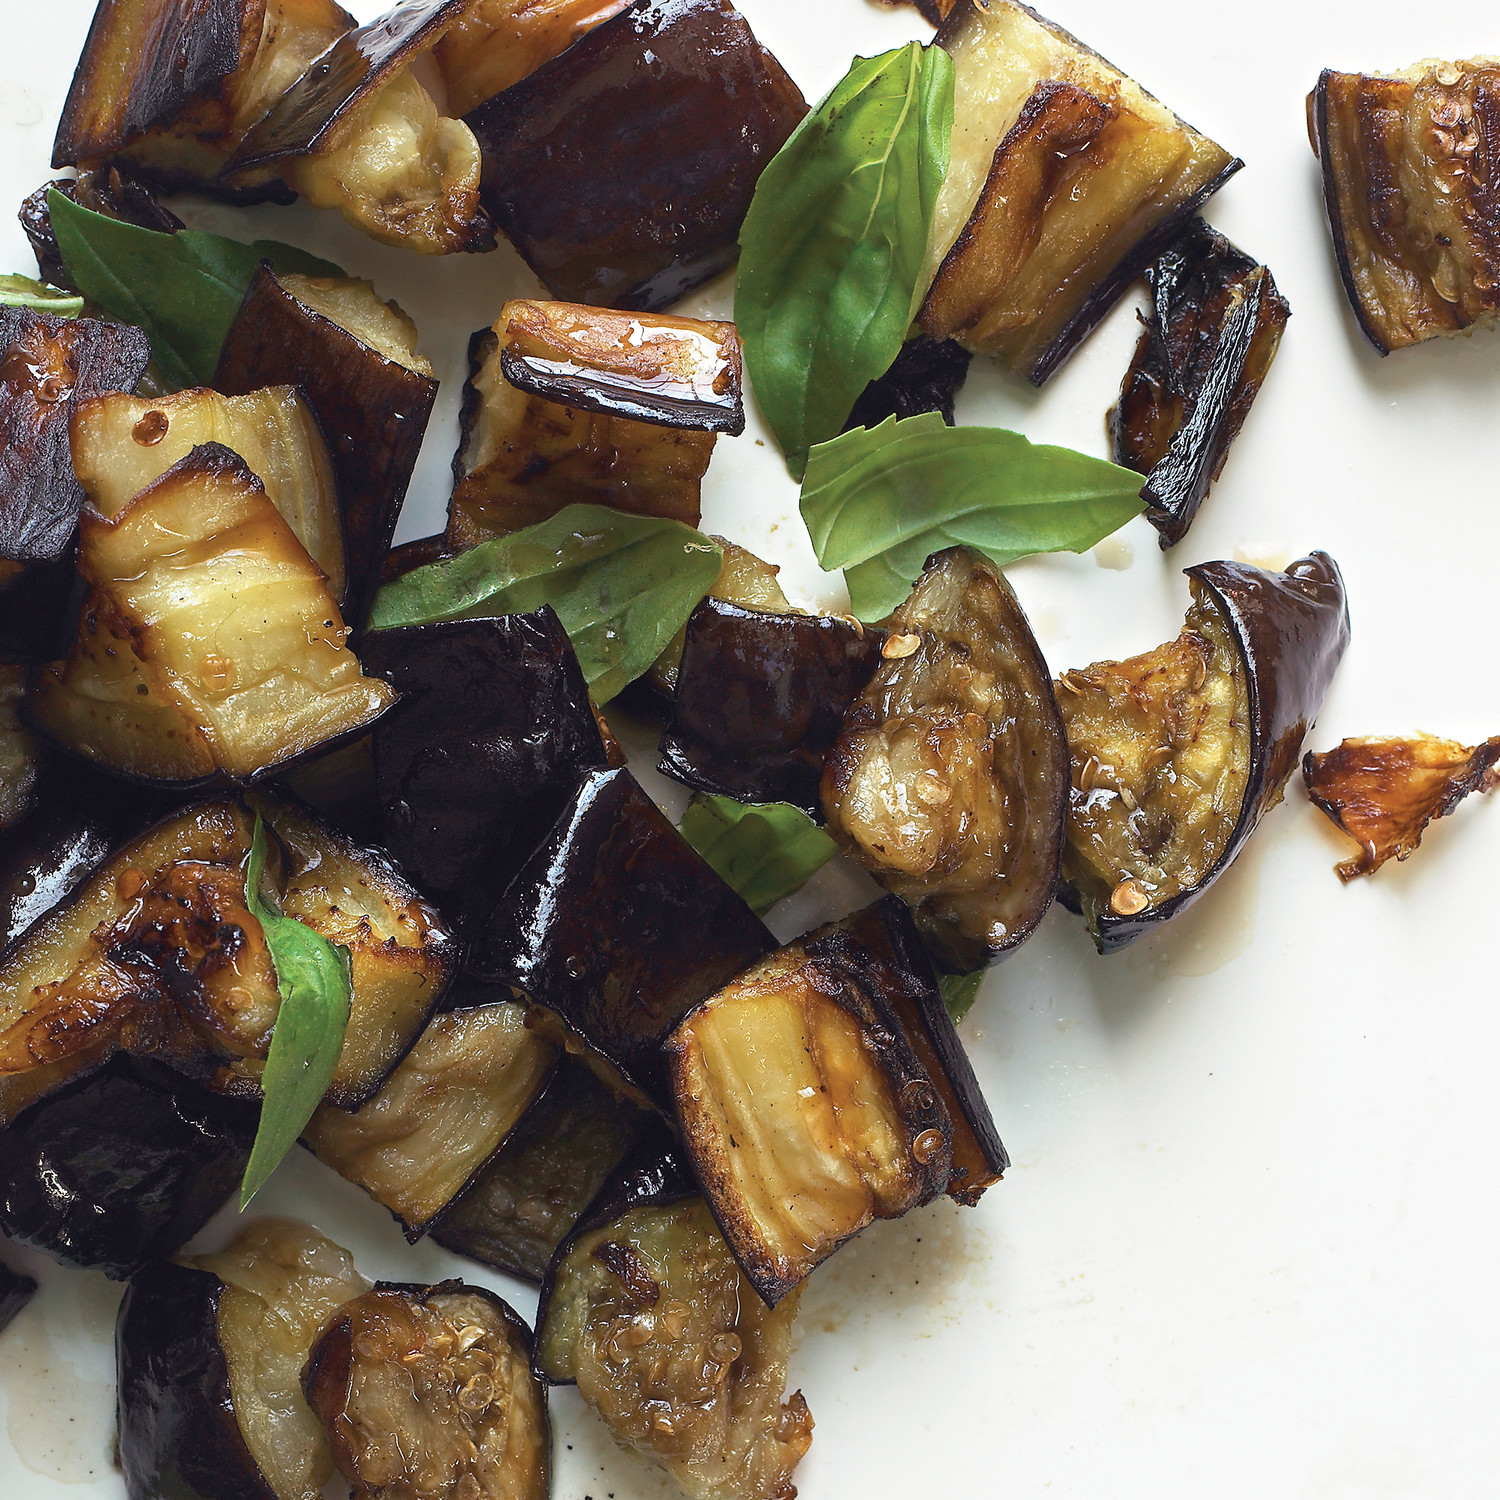 Quick and easy grilled eggplant recipes